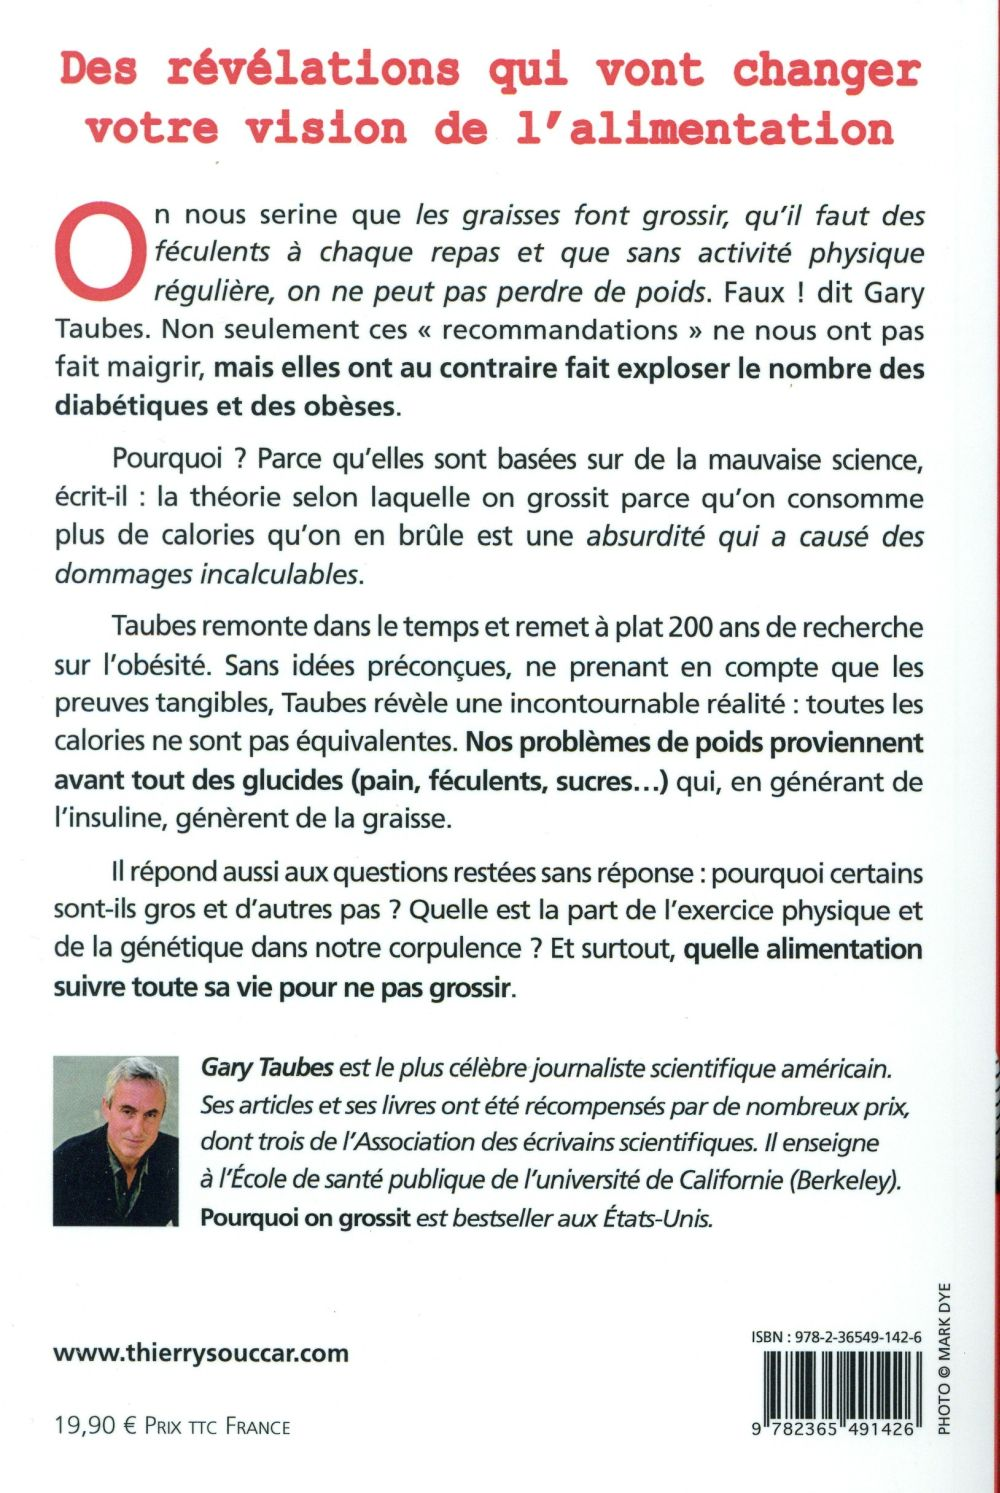 551b47d3e6b Pourquoi on grossit - Gary Taubes - Thierry Souccar - Grand format ...